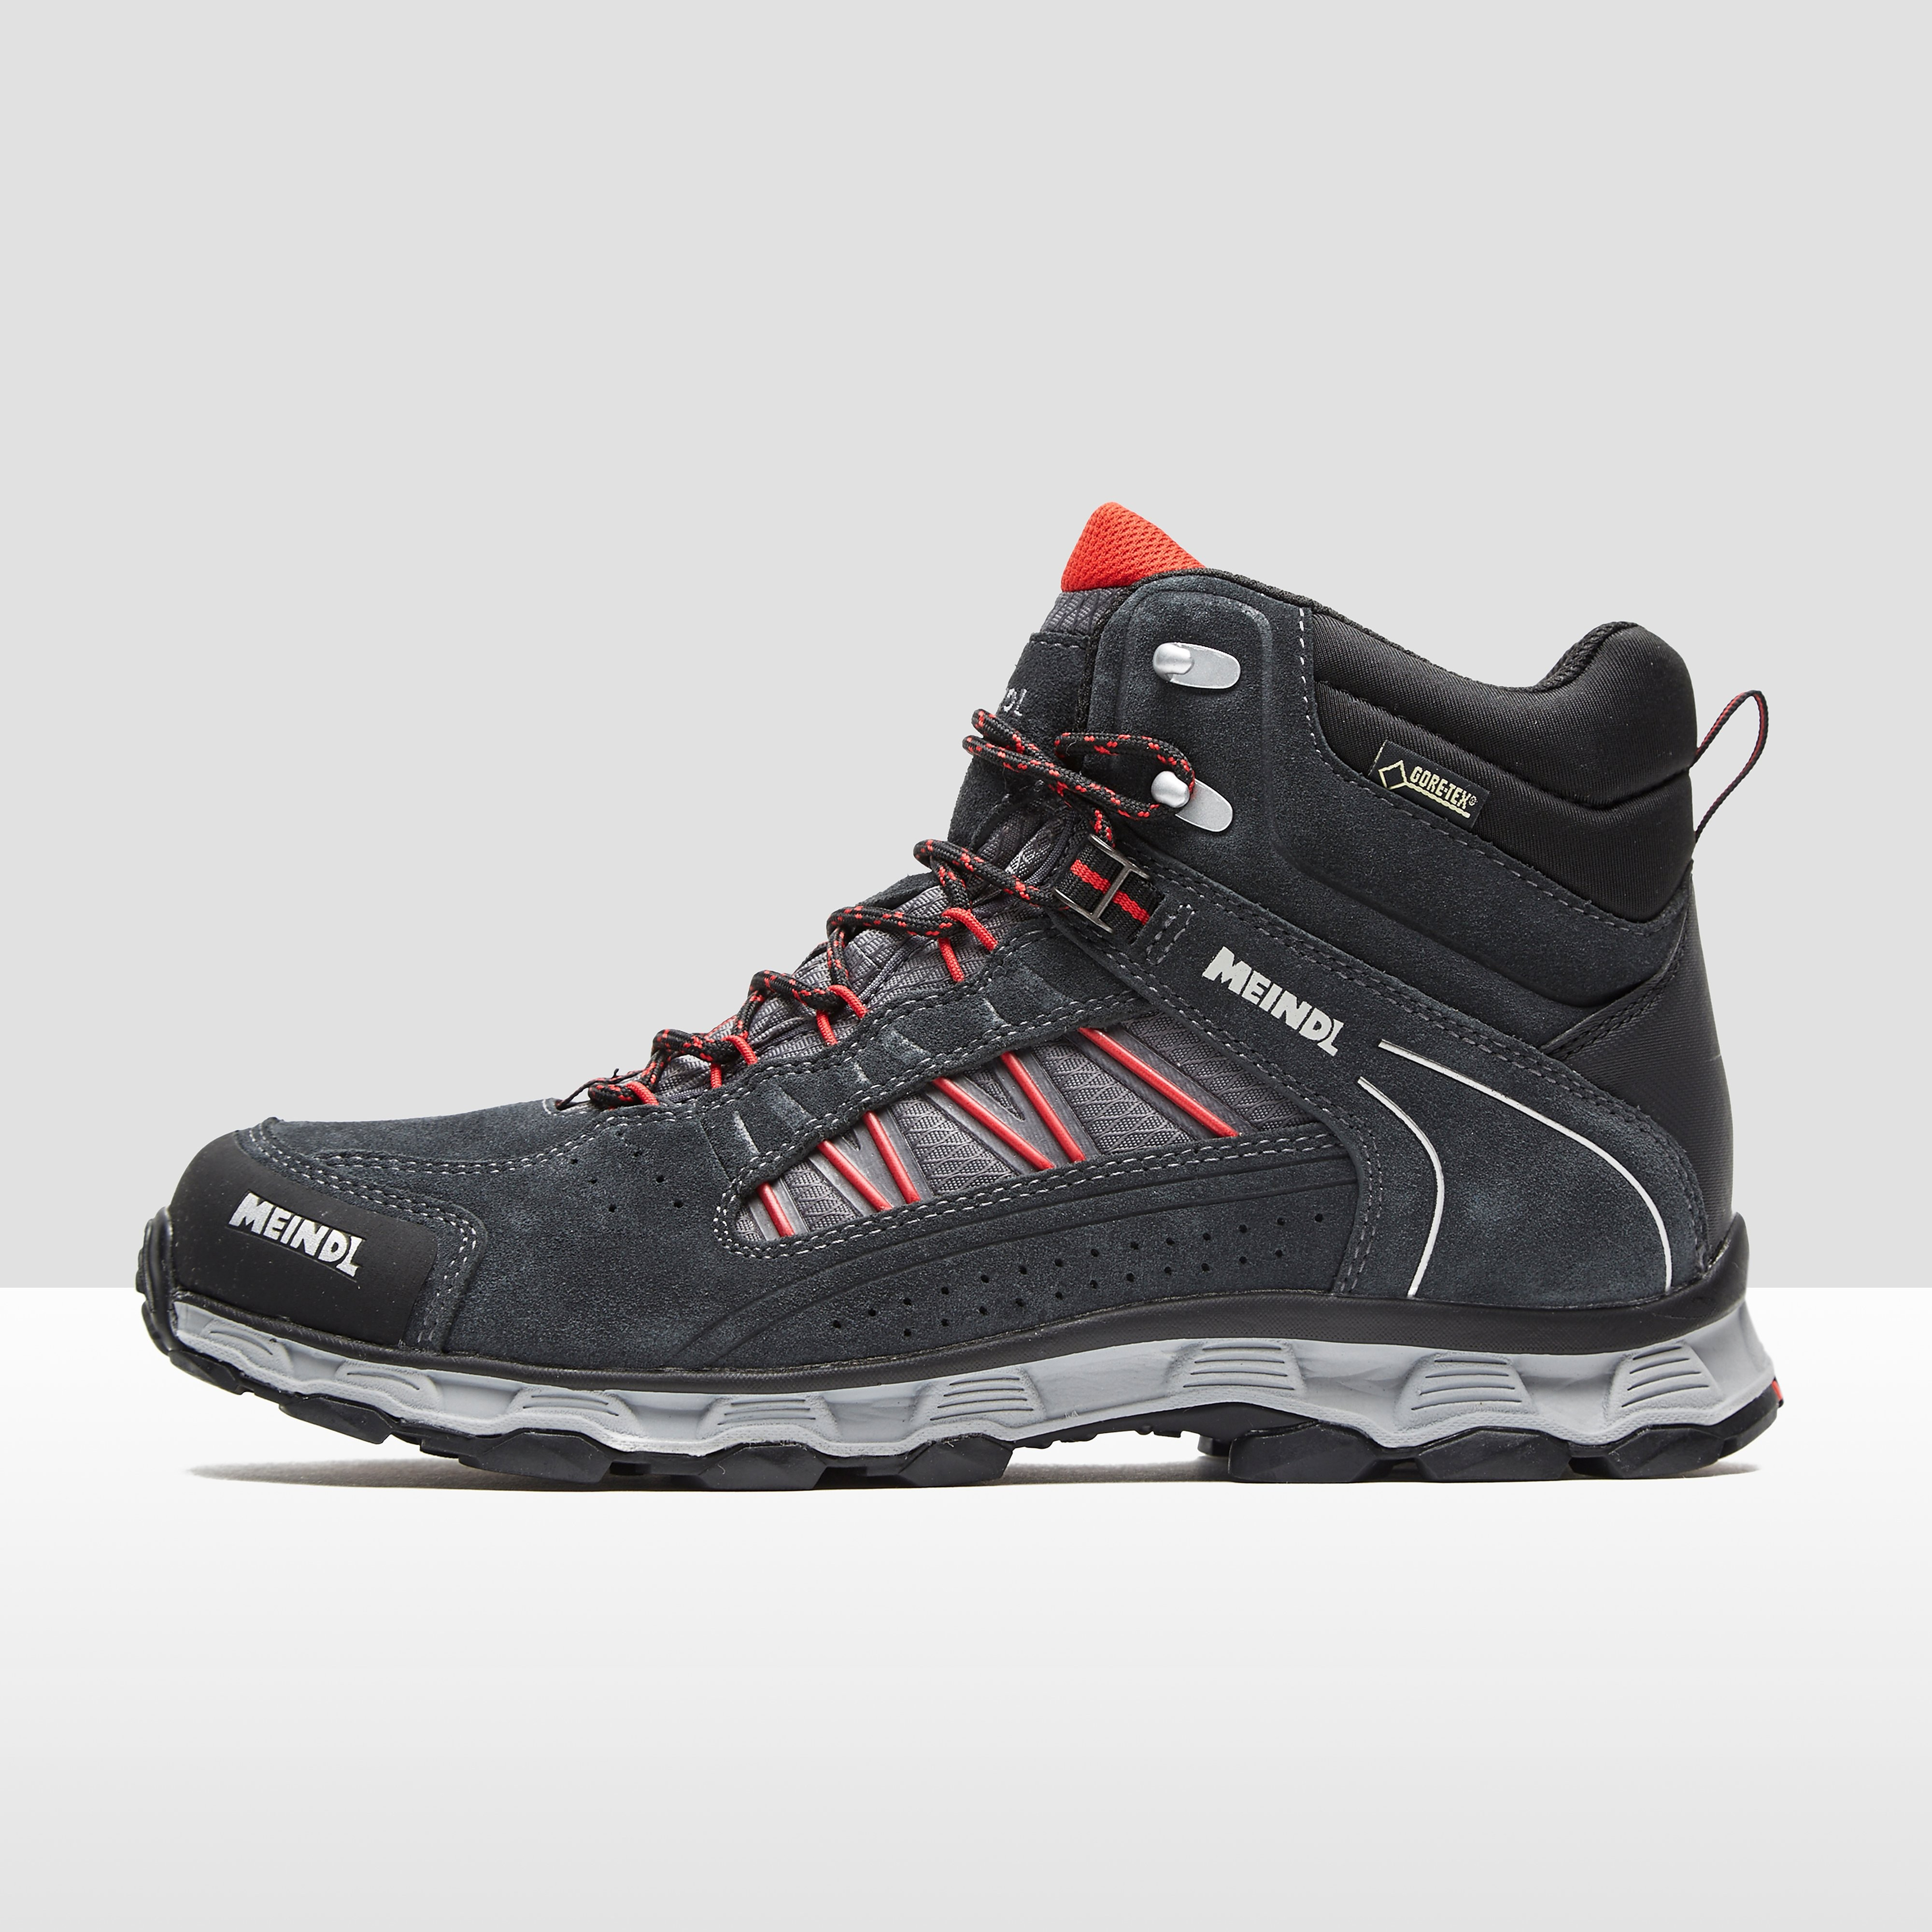 Meindl SX 2.5 Mid GTX Men's Hiking Boots